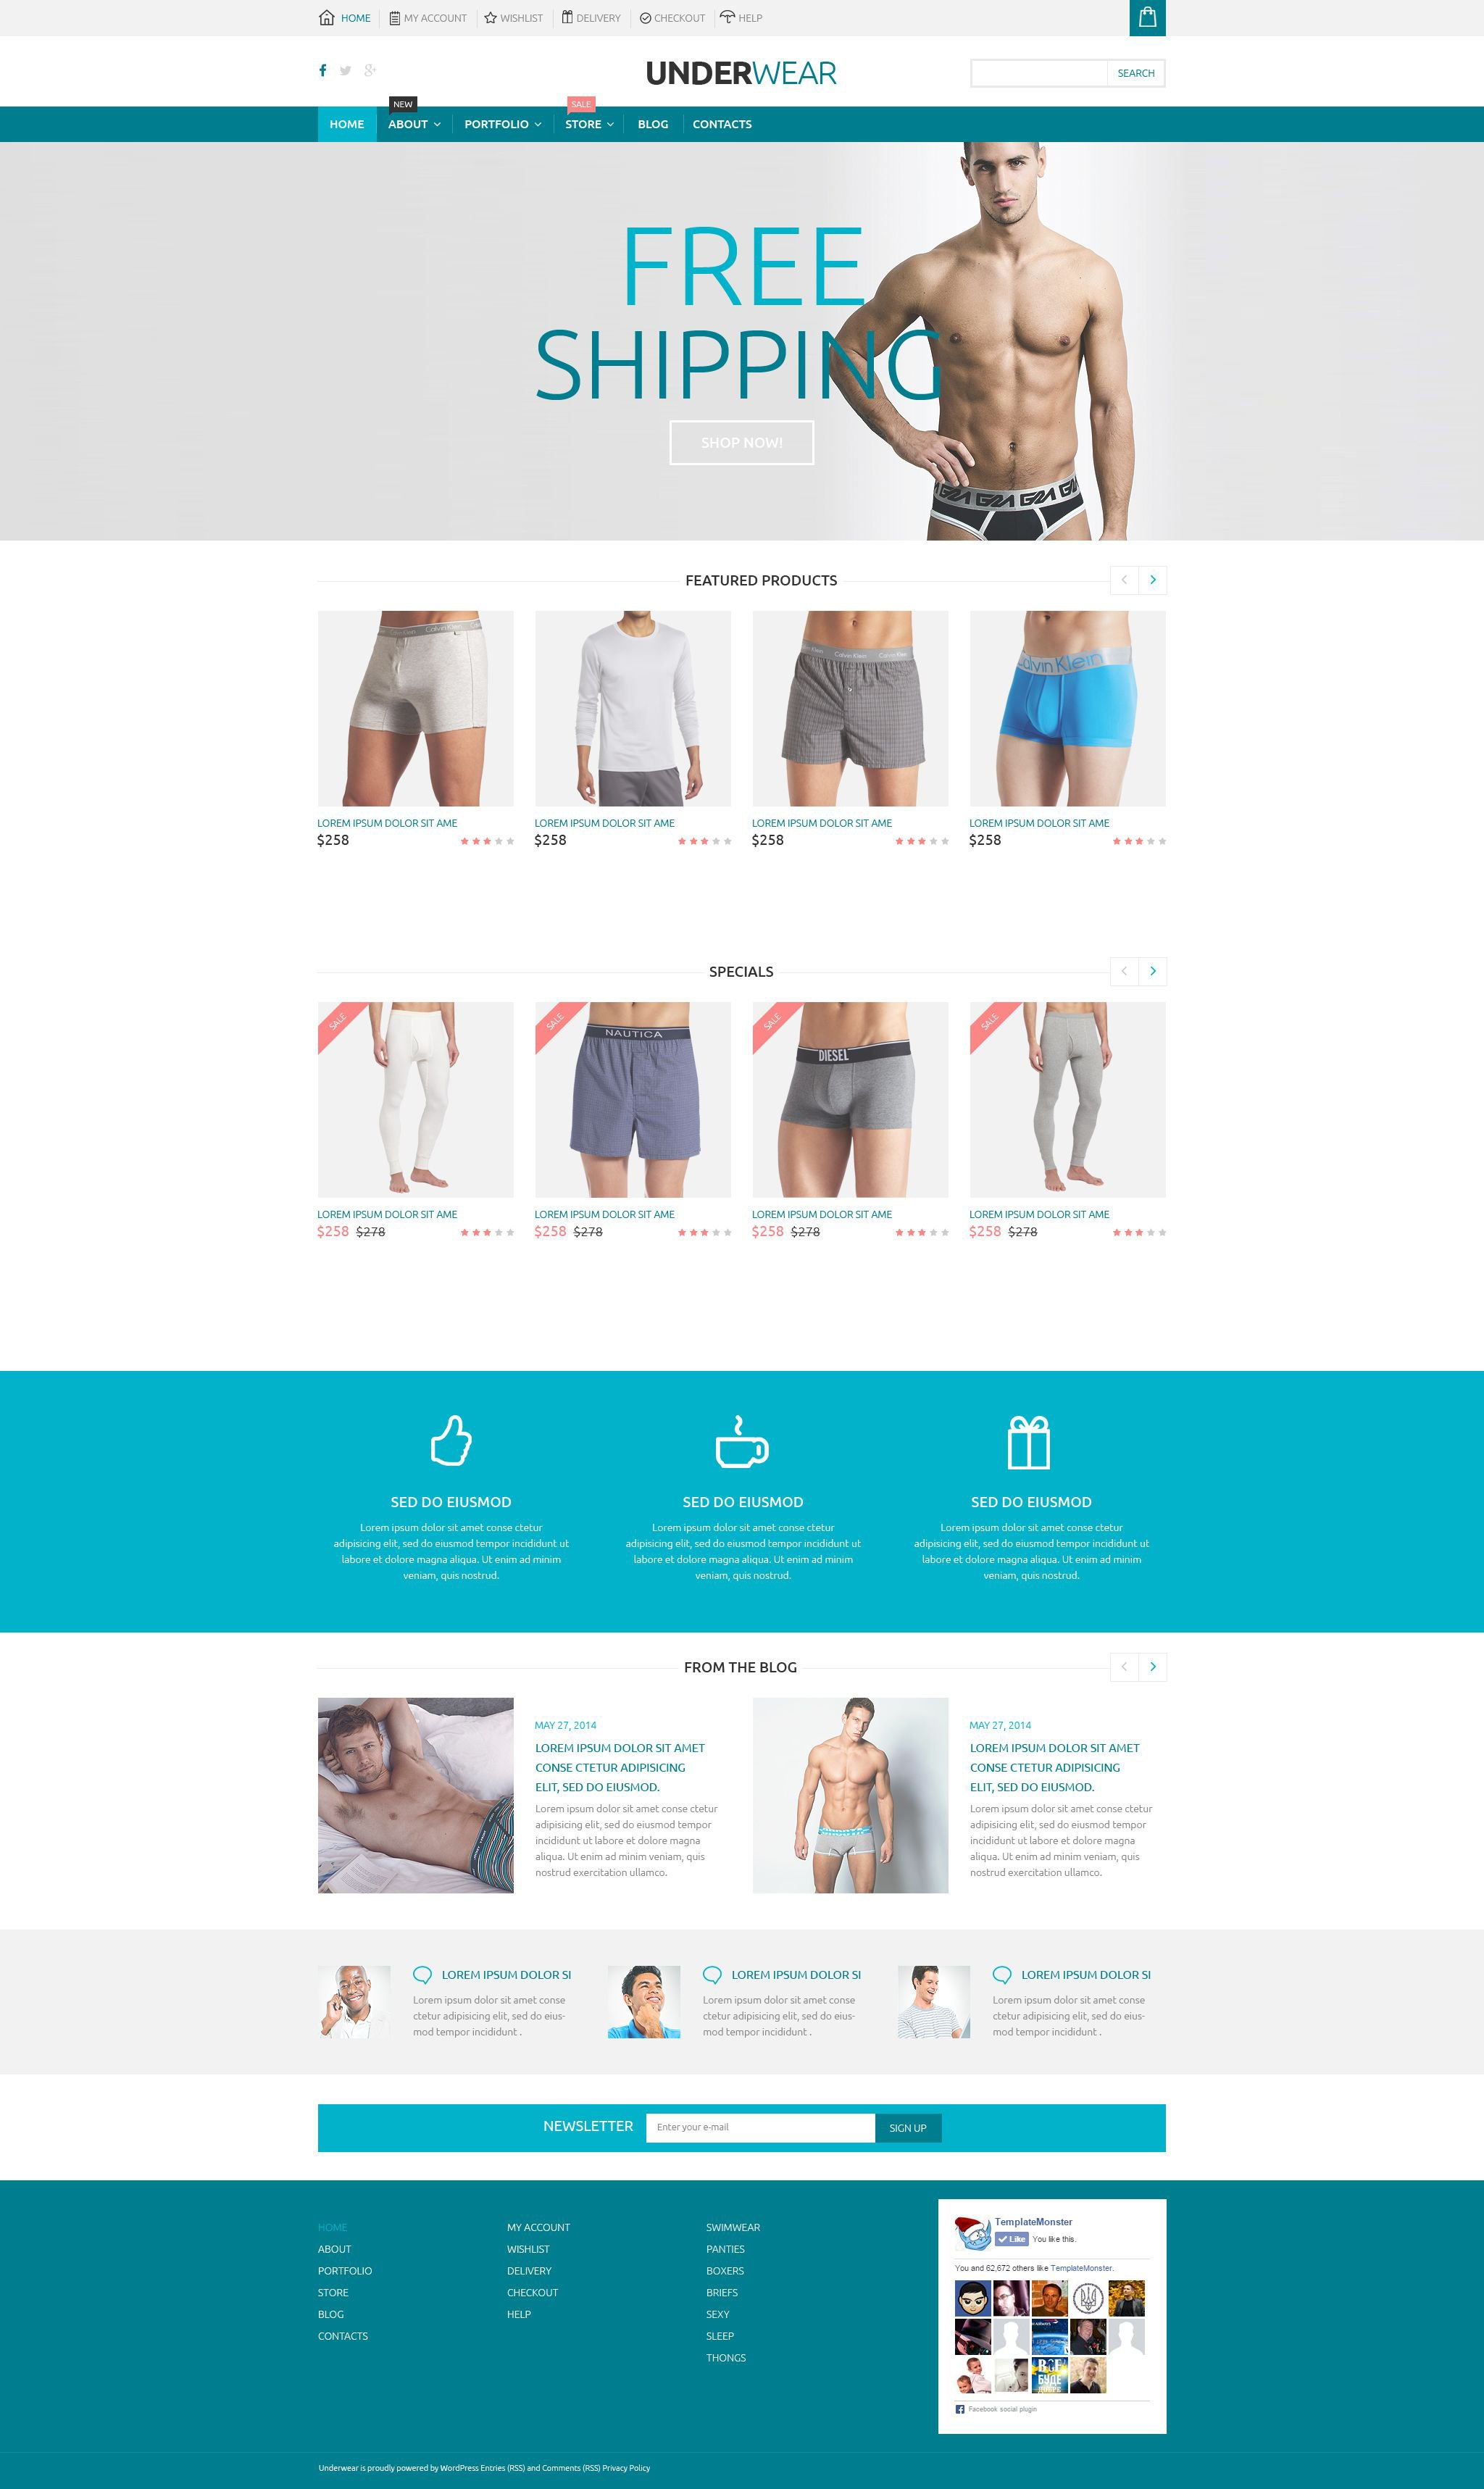 The Underwear Man Men WooCommerce Design 53760, one of the best WooCommerce themes of its kind (wedding), also known as Underwear man men WooCommerce template, shop WooCommerce template, briefs WooCommerce template, boxer WooCommerce template, shorts WooCommerce template, boxers WooCommerce template, sexy sleep WooCommerce template, pantie WooCommerce template, swim WooCommerce template, wear WooCommerce template, swimming WooCommerce template, trunks and related with Underwear man men, shop, briefs, boxer, shorts, boxers, sexy sleep, pantie, swim, wear, swimming, trunks, etc.